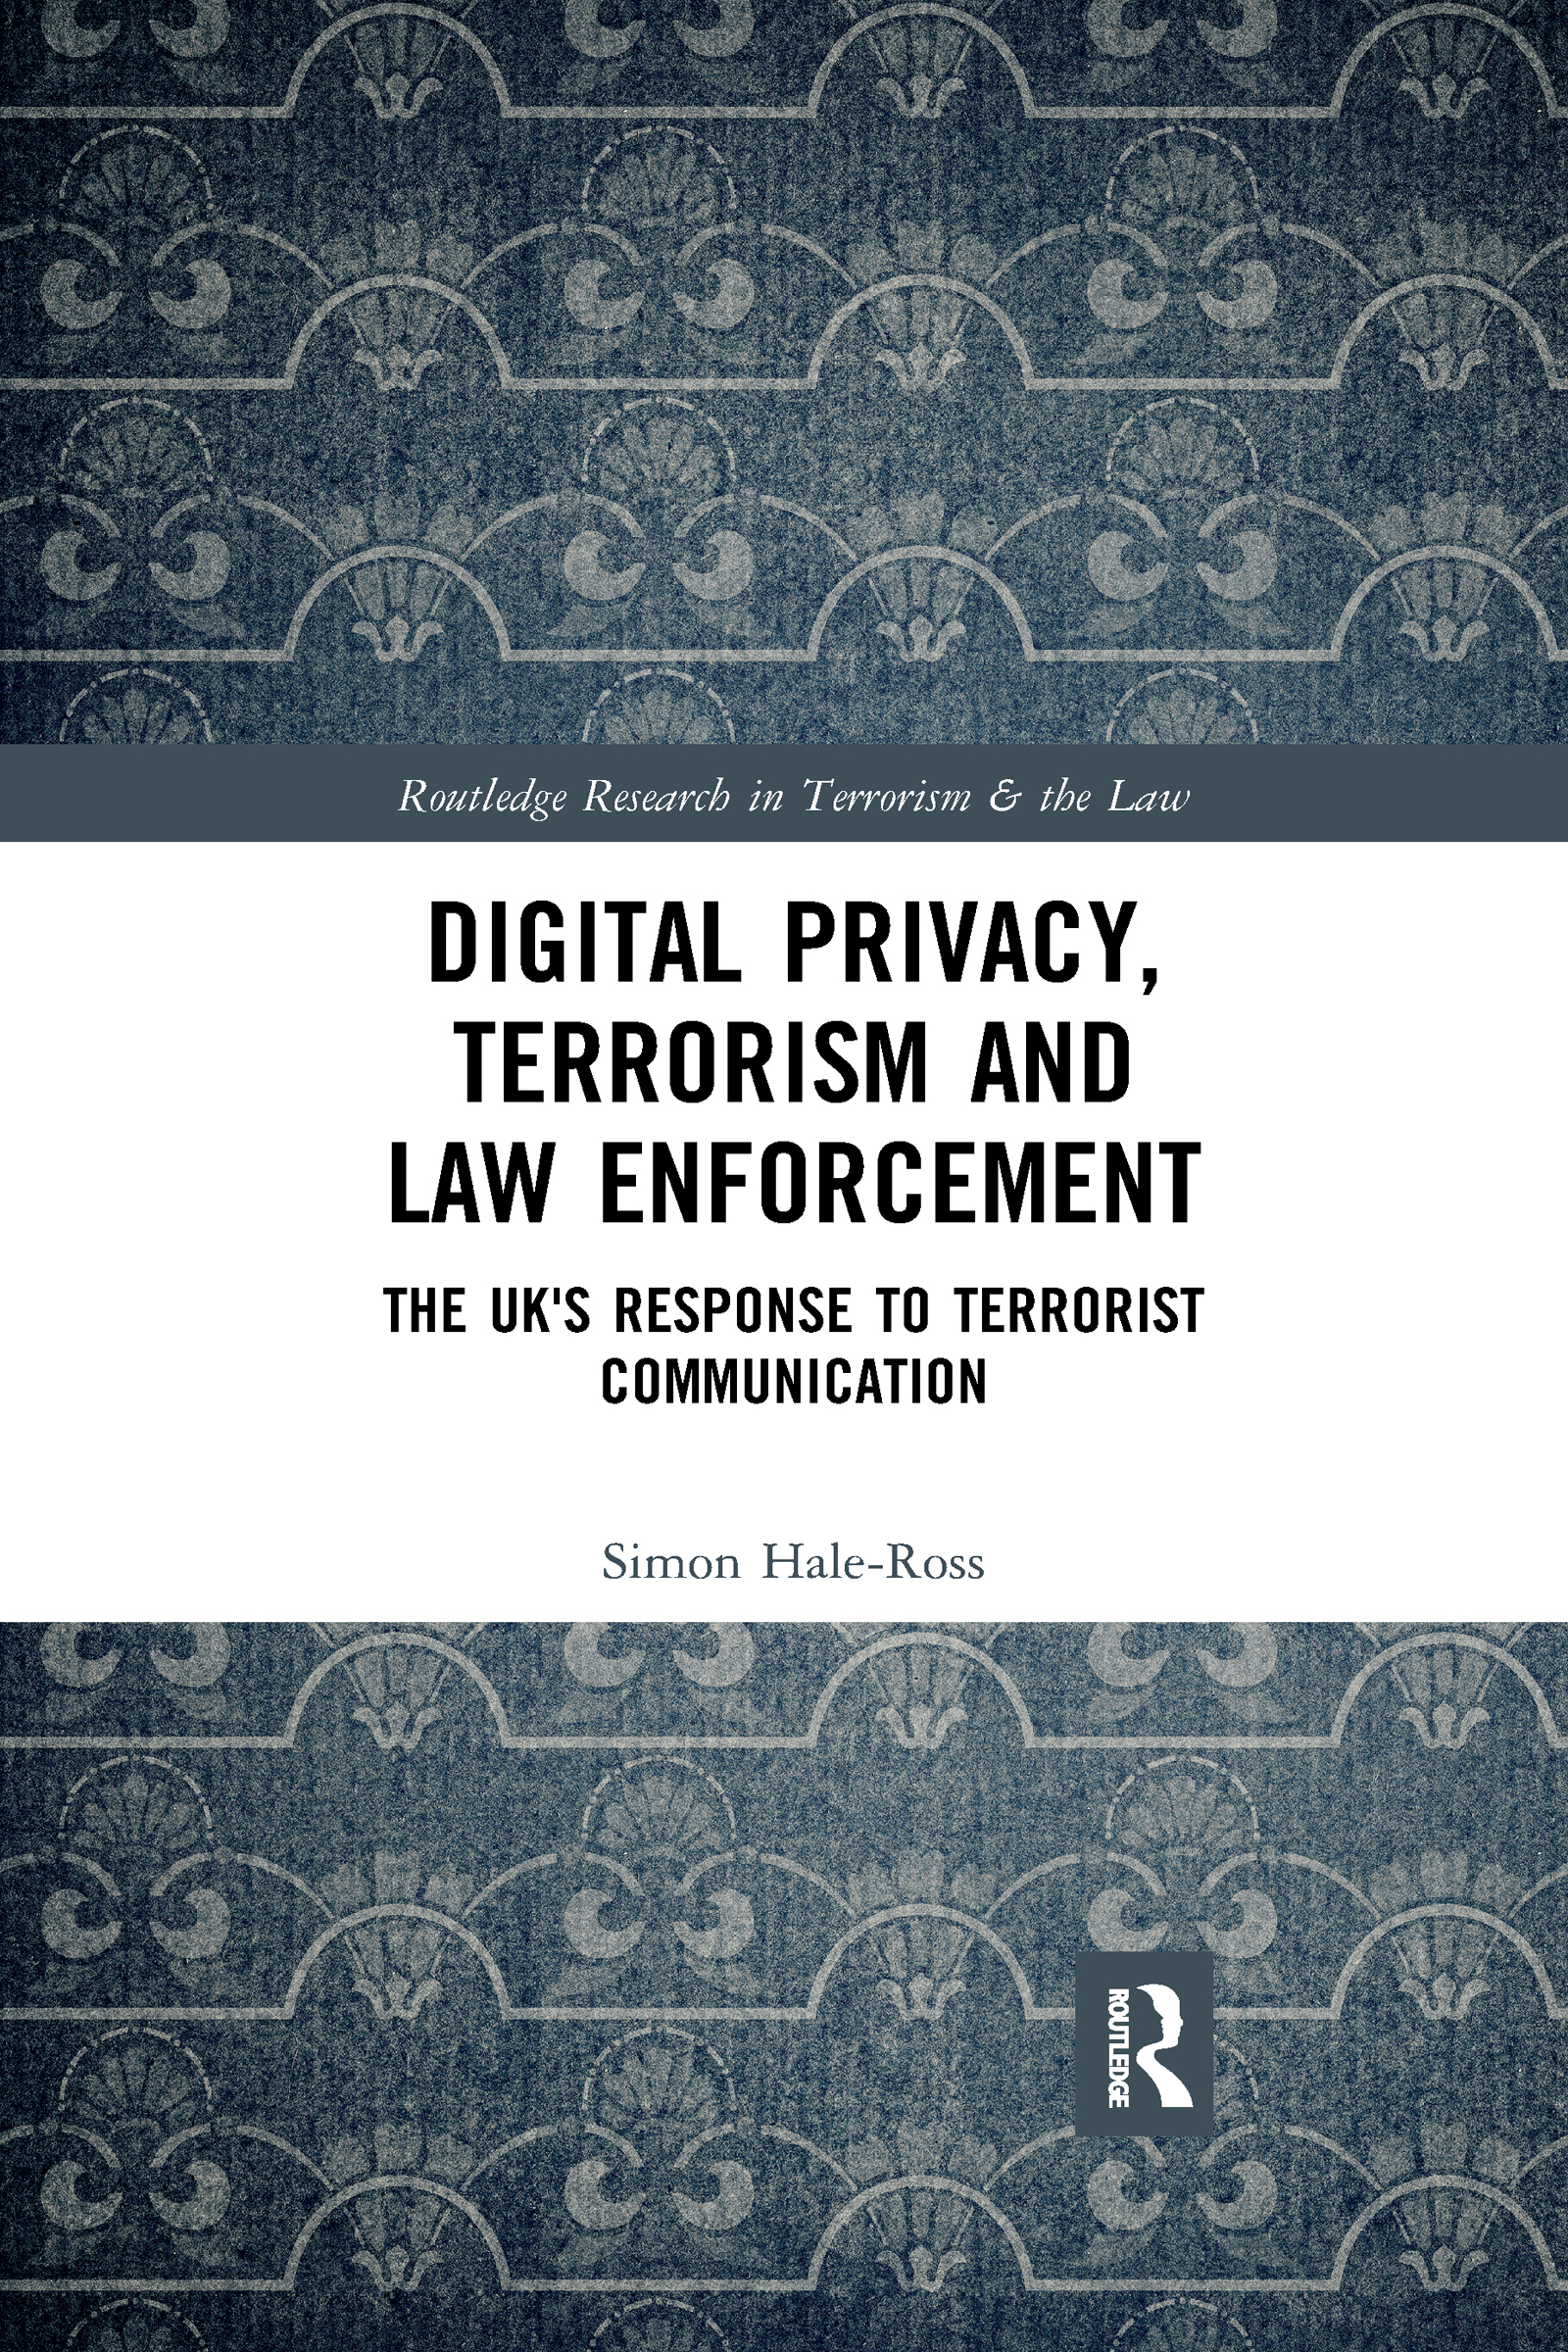 Digital Privacy, Terrorism and Law Enforcement